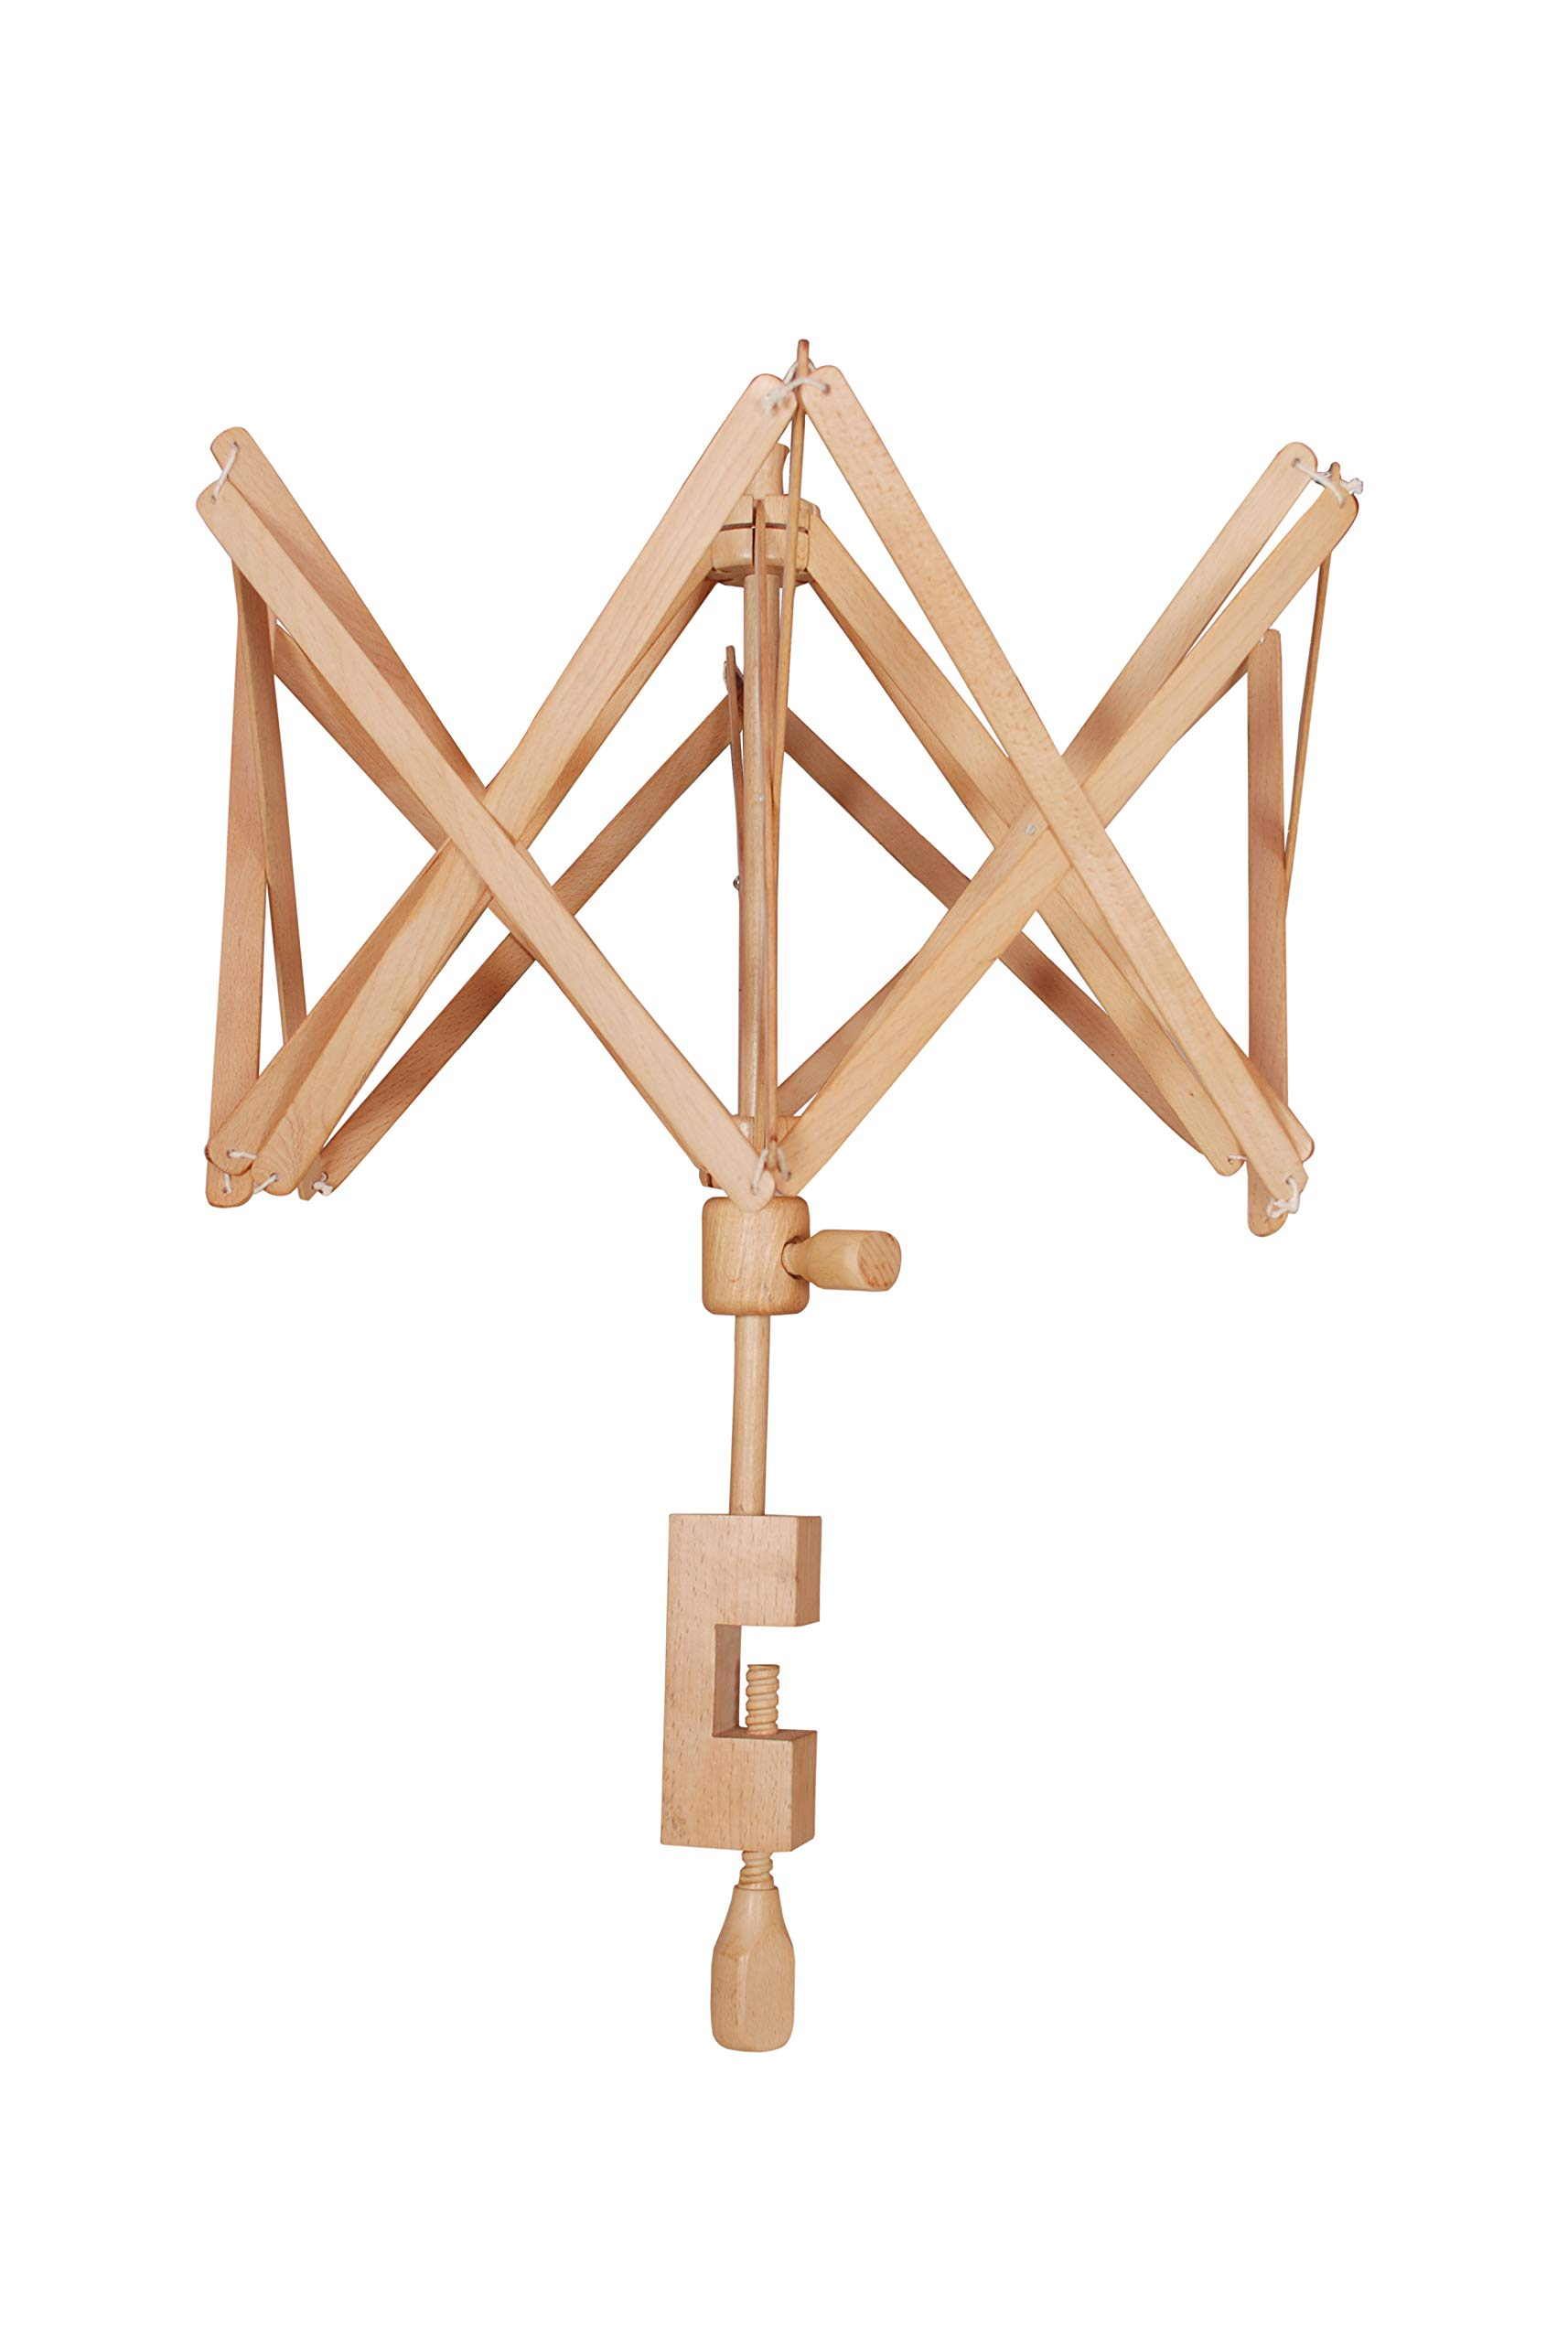 Wooden Umbrella Swift Yarn Winder 24 Inch- Handcrafted with Materials and Super Smooth Finish - Elegant Design - Perfect Gift for Knitters!